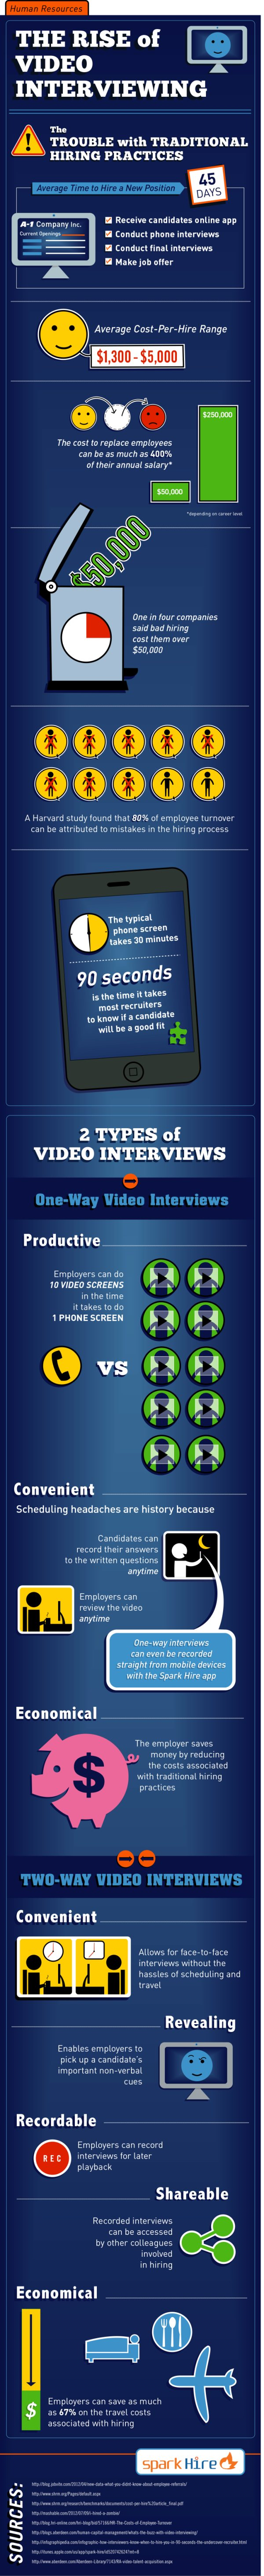 The Rise of Video Interviews Infographic